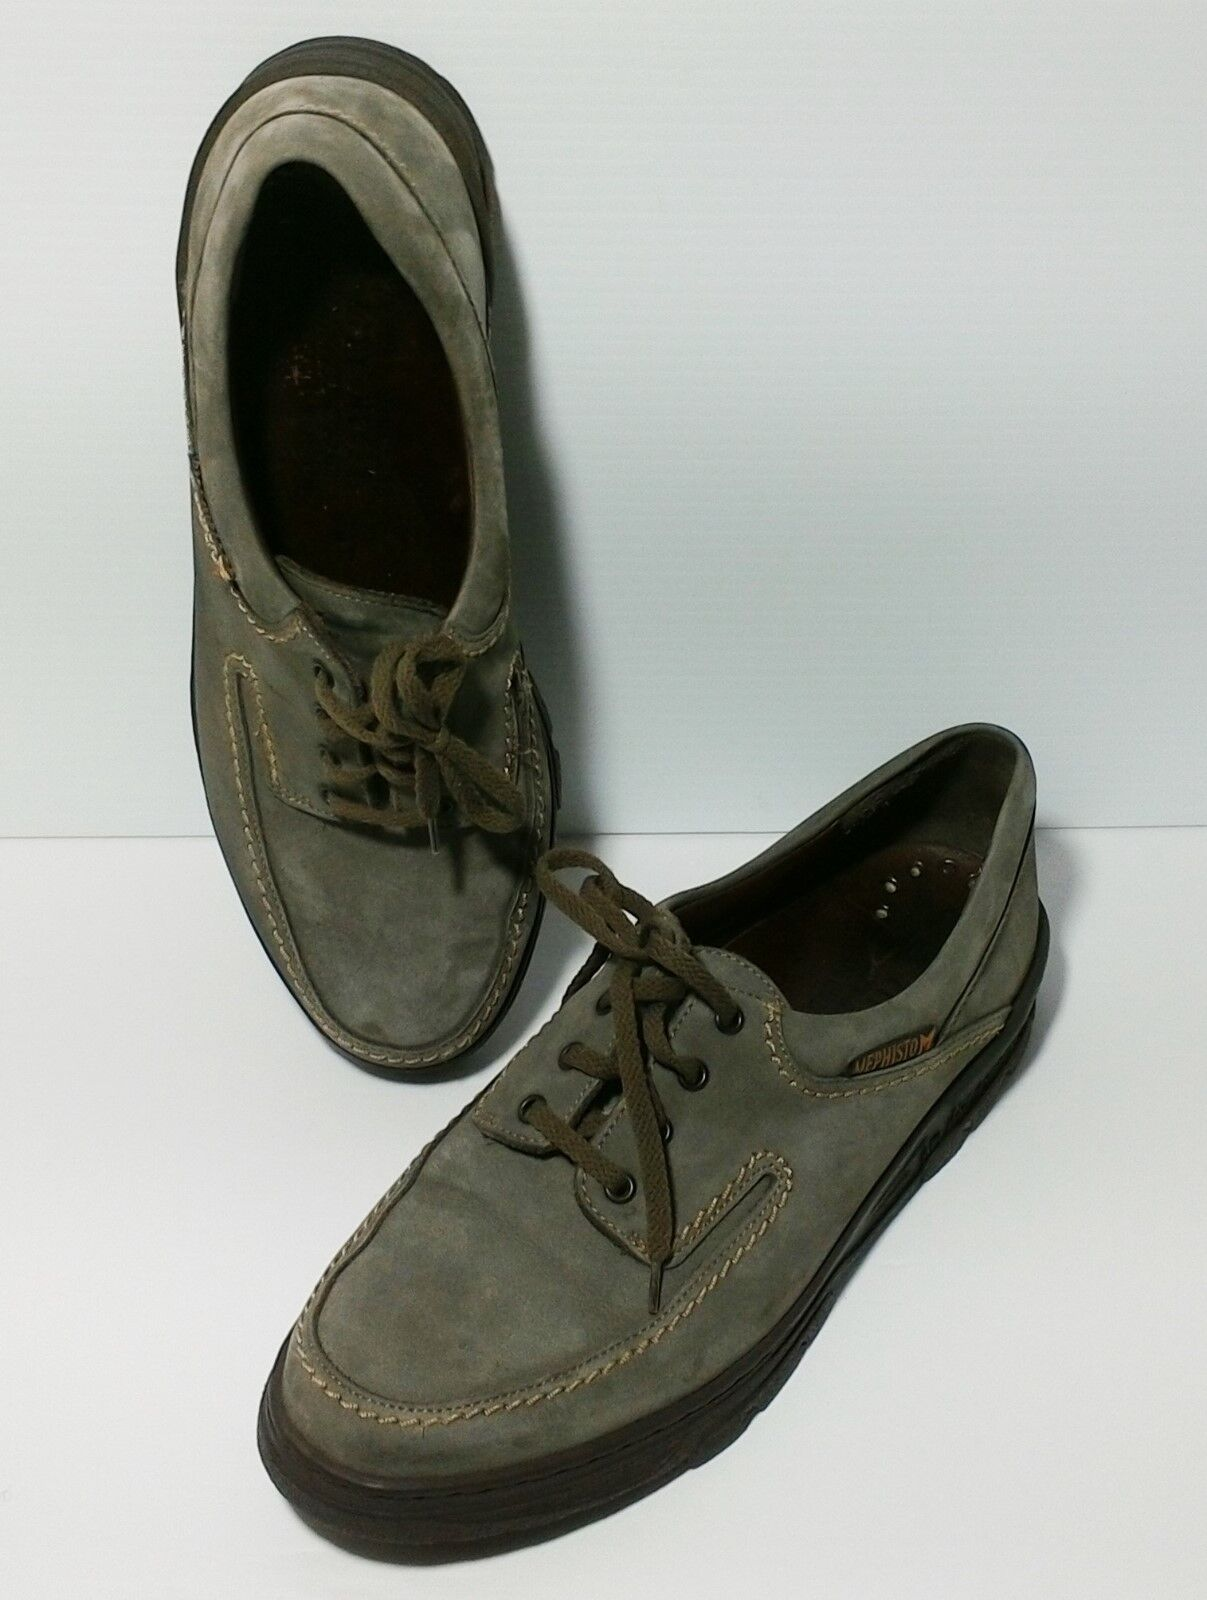 Mephisto Travels Air Jet System  Genuine Leather WMNS shoes Sz 9 EUR 6.5 France